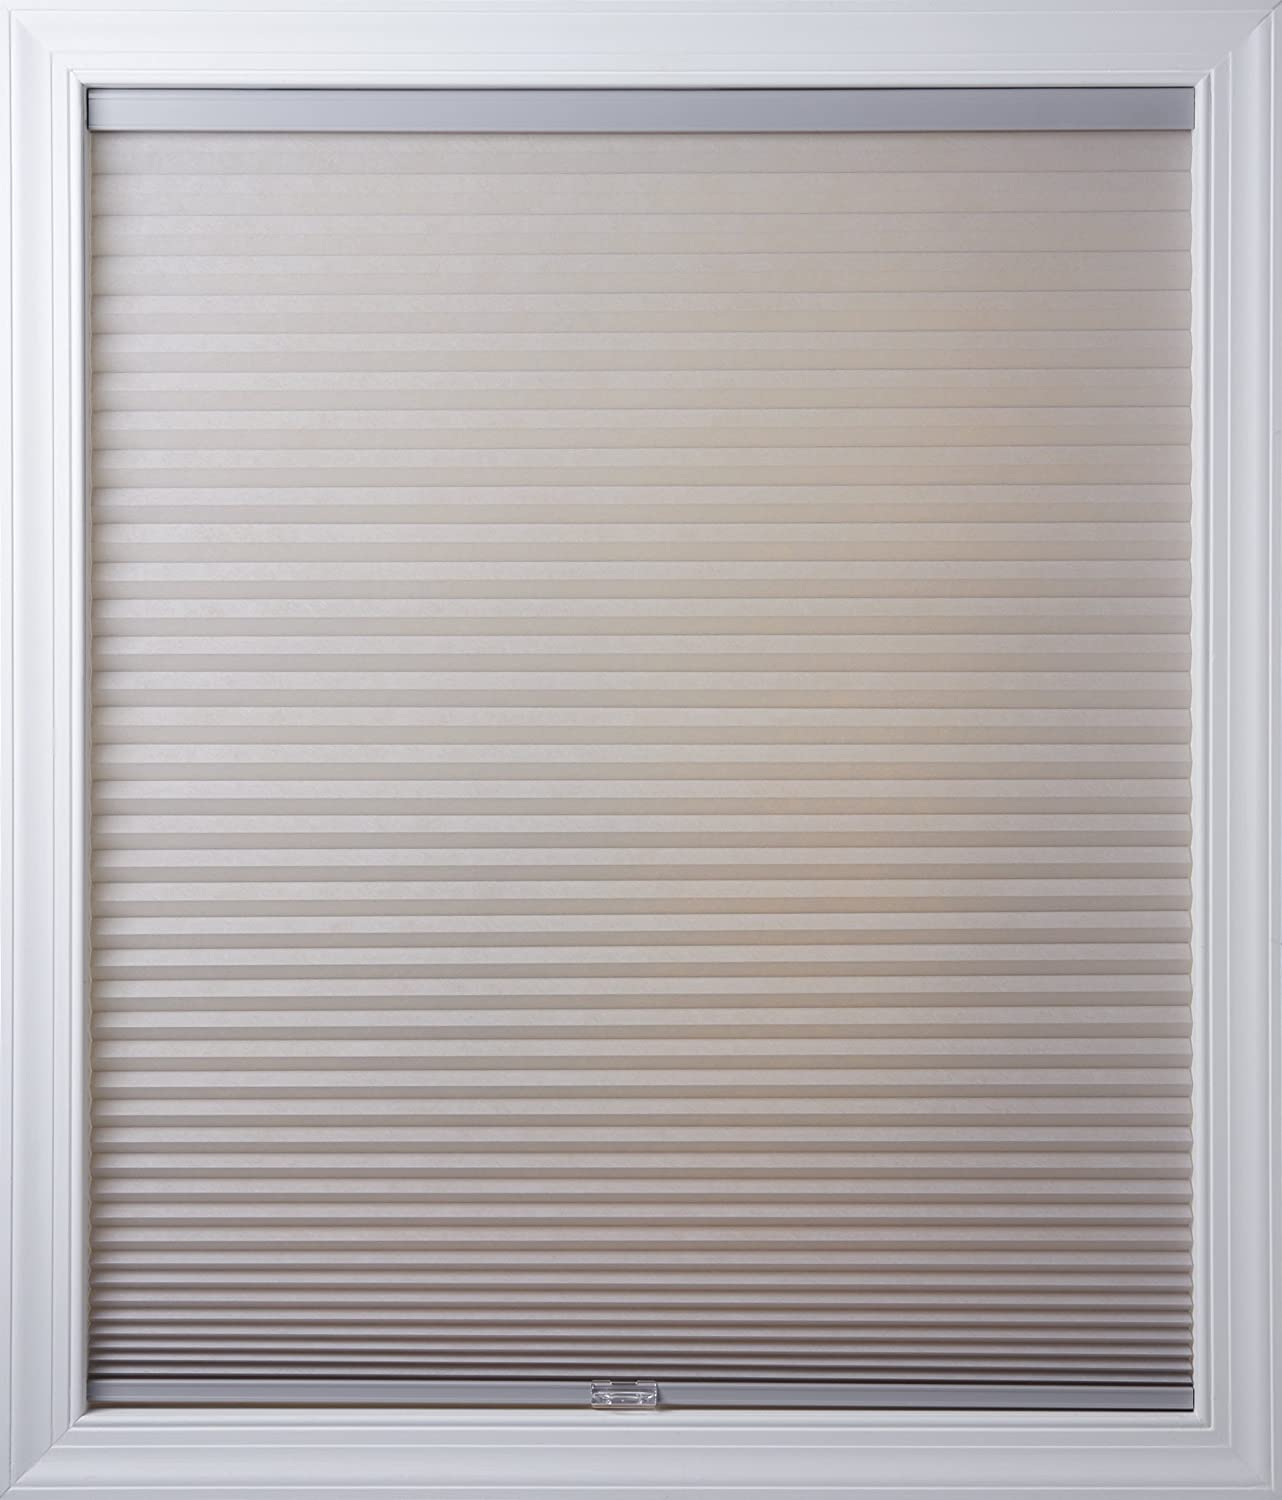 New Age Blinds 44 inch x 48 inch Cordless Cellular Shades, Outside Frame Mount, Gray Sheen, Light Filtering Worldwide 4844NAWFOLFGRS